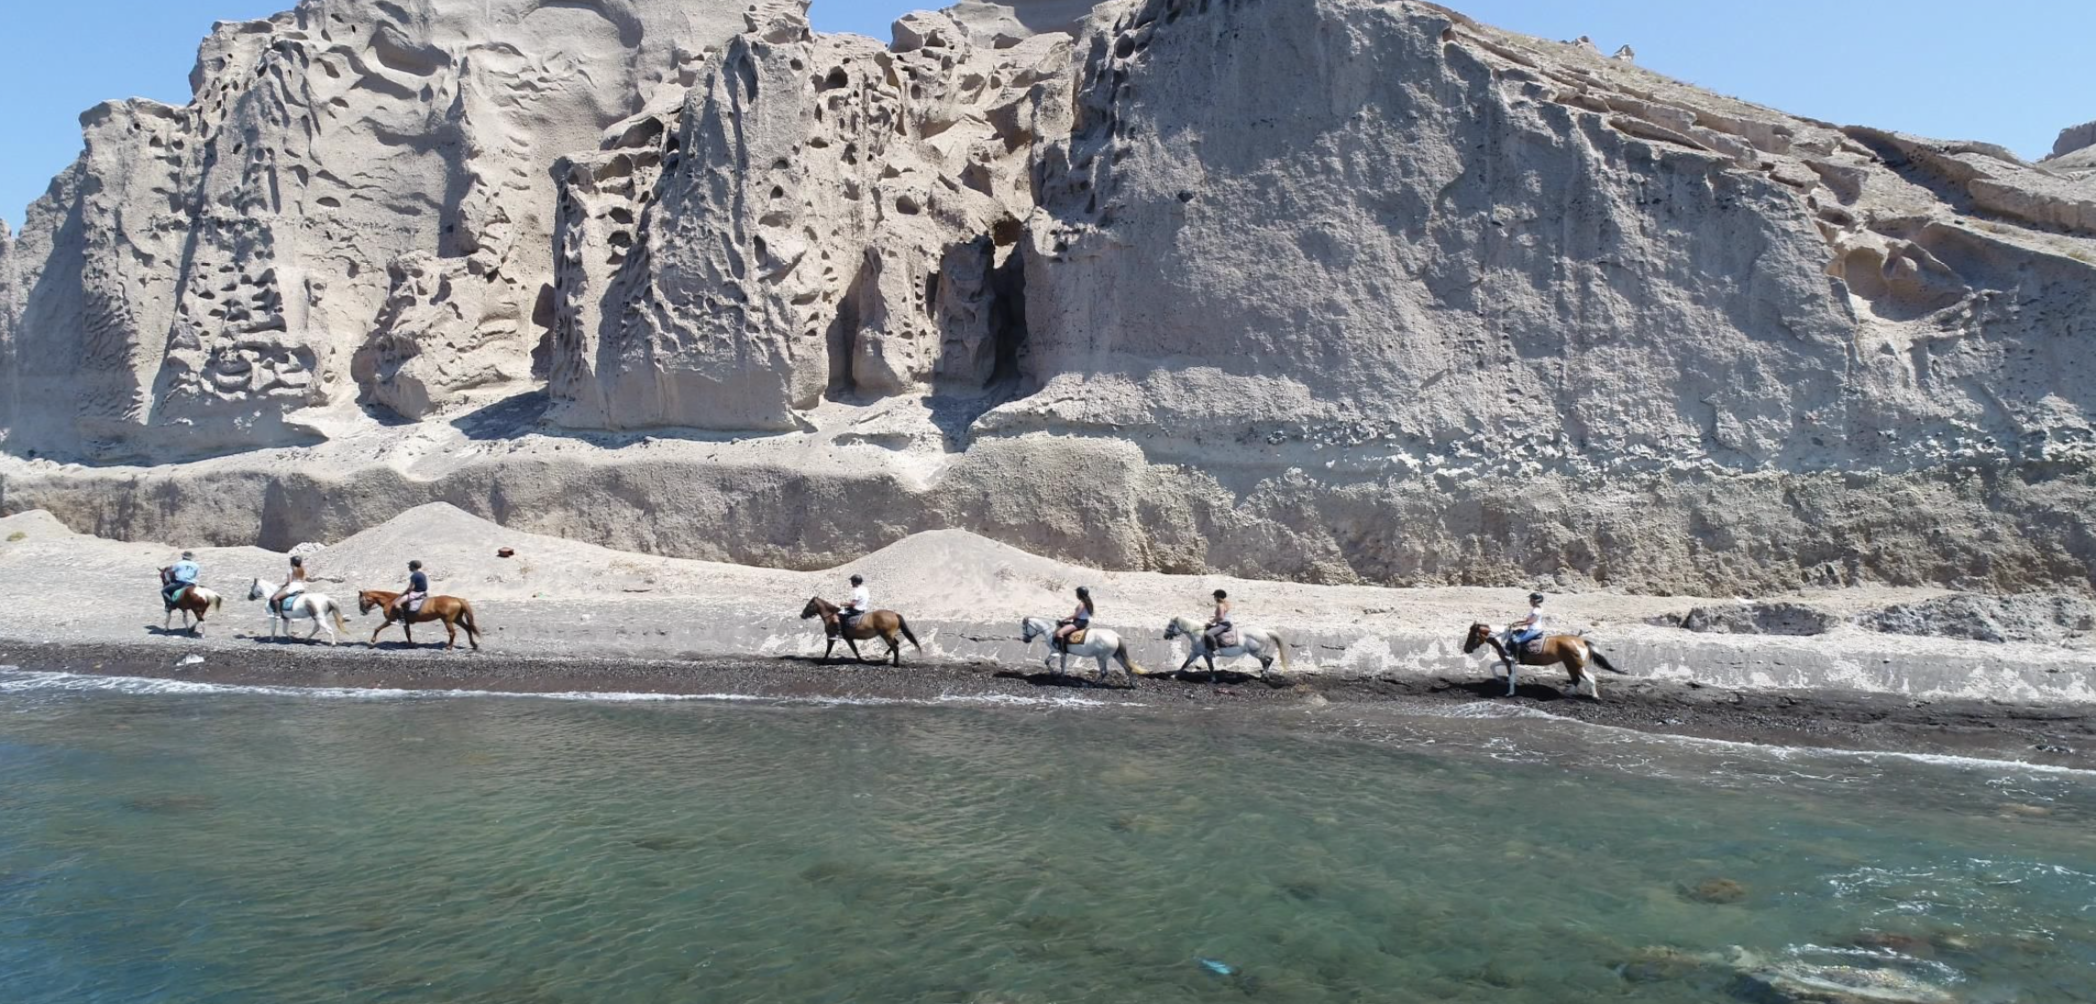 Greece_Santorini_Akrotiri_Horse_Riding.png